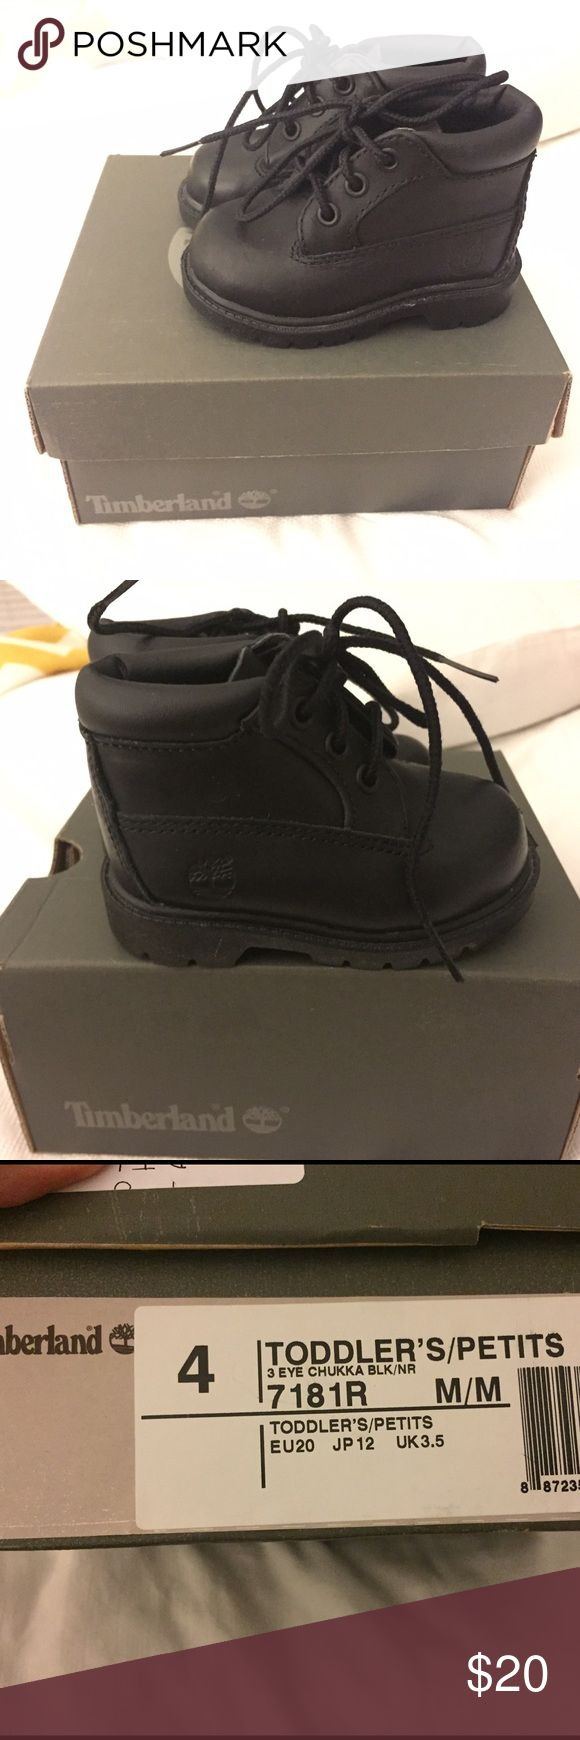 Toddler timberlands worn twice stored in box Size 4 toddler timberland black boots, great condition Timberland Shoes Boots